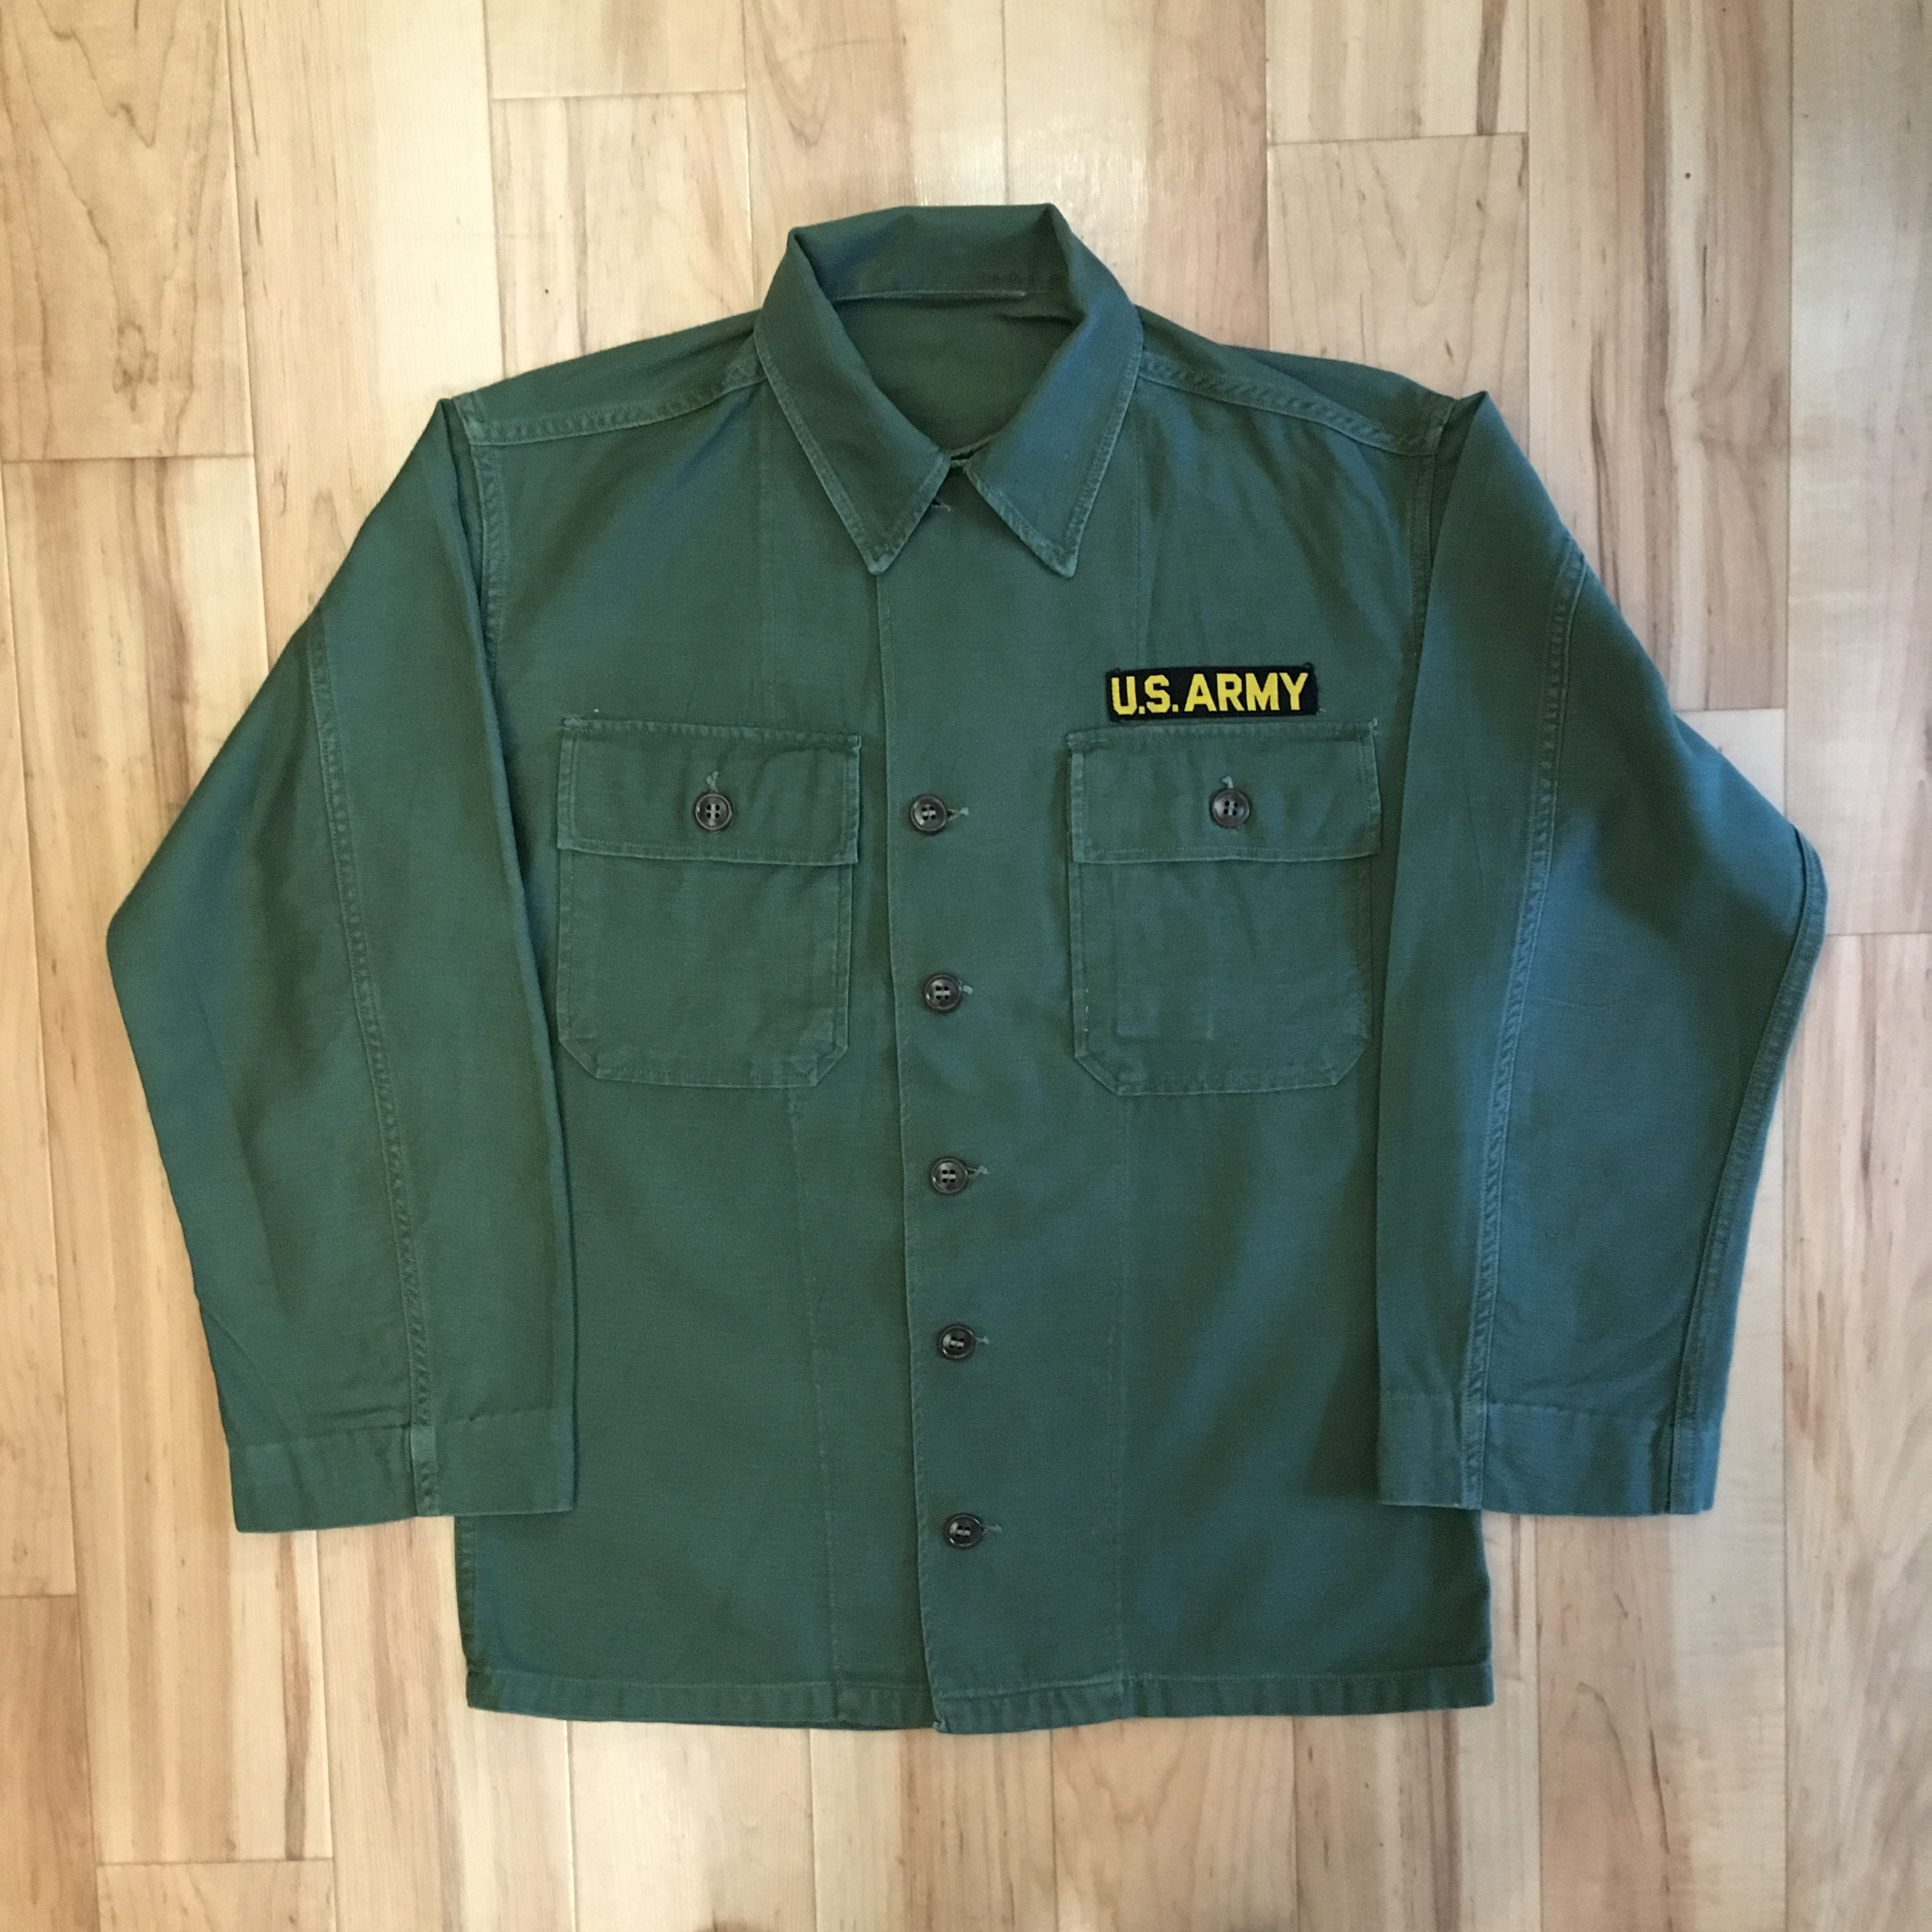 US ARMY COTTON UTILITY LONG SLEEVE SHIRTS